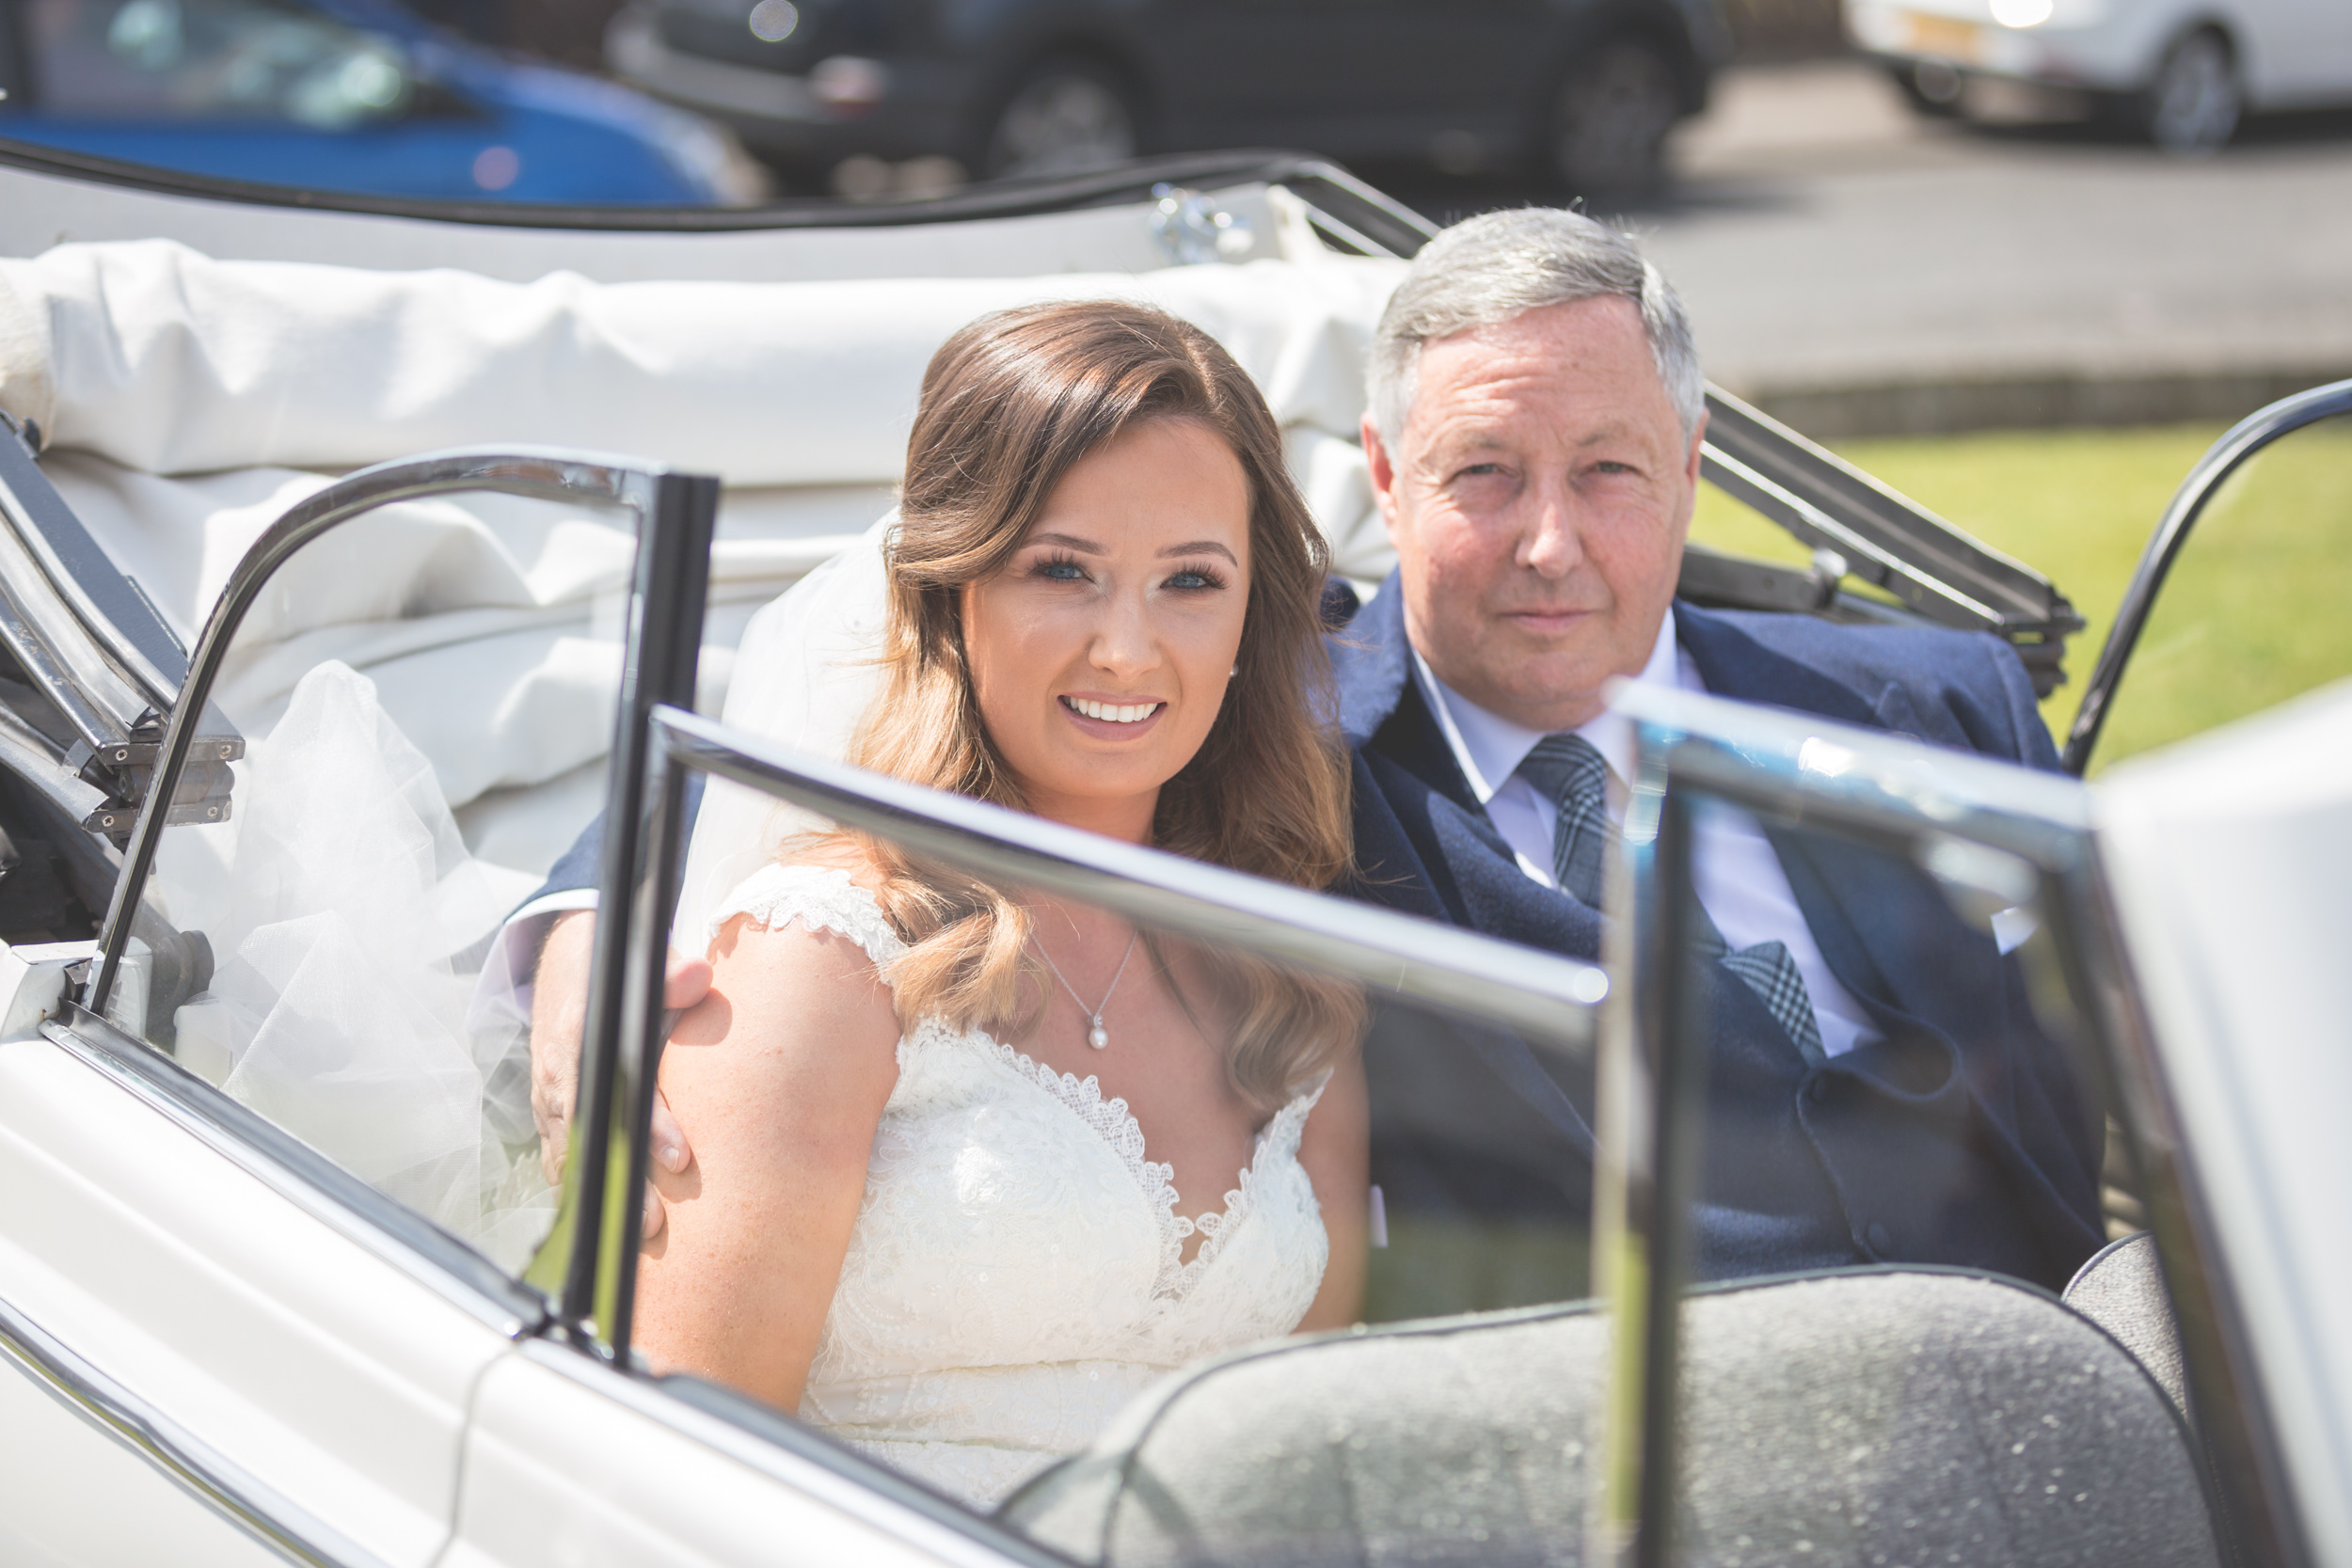 Brian McEwan | Northern Ireland Wedding Photographer | Rebecca & Michael | Ceremony-3.jpg